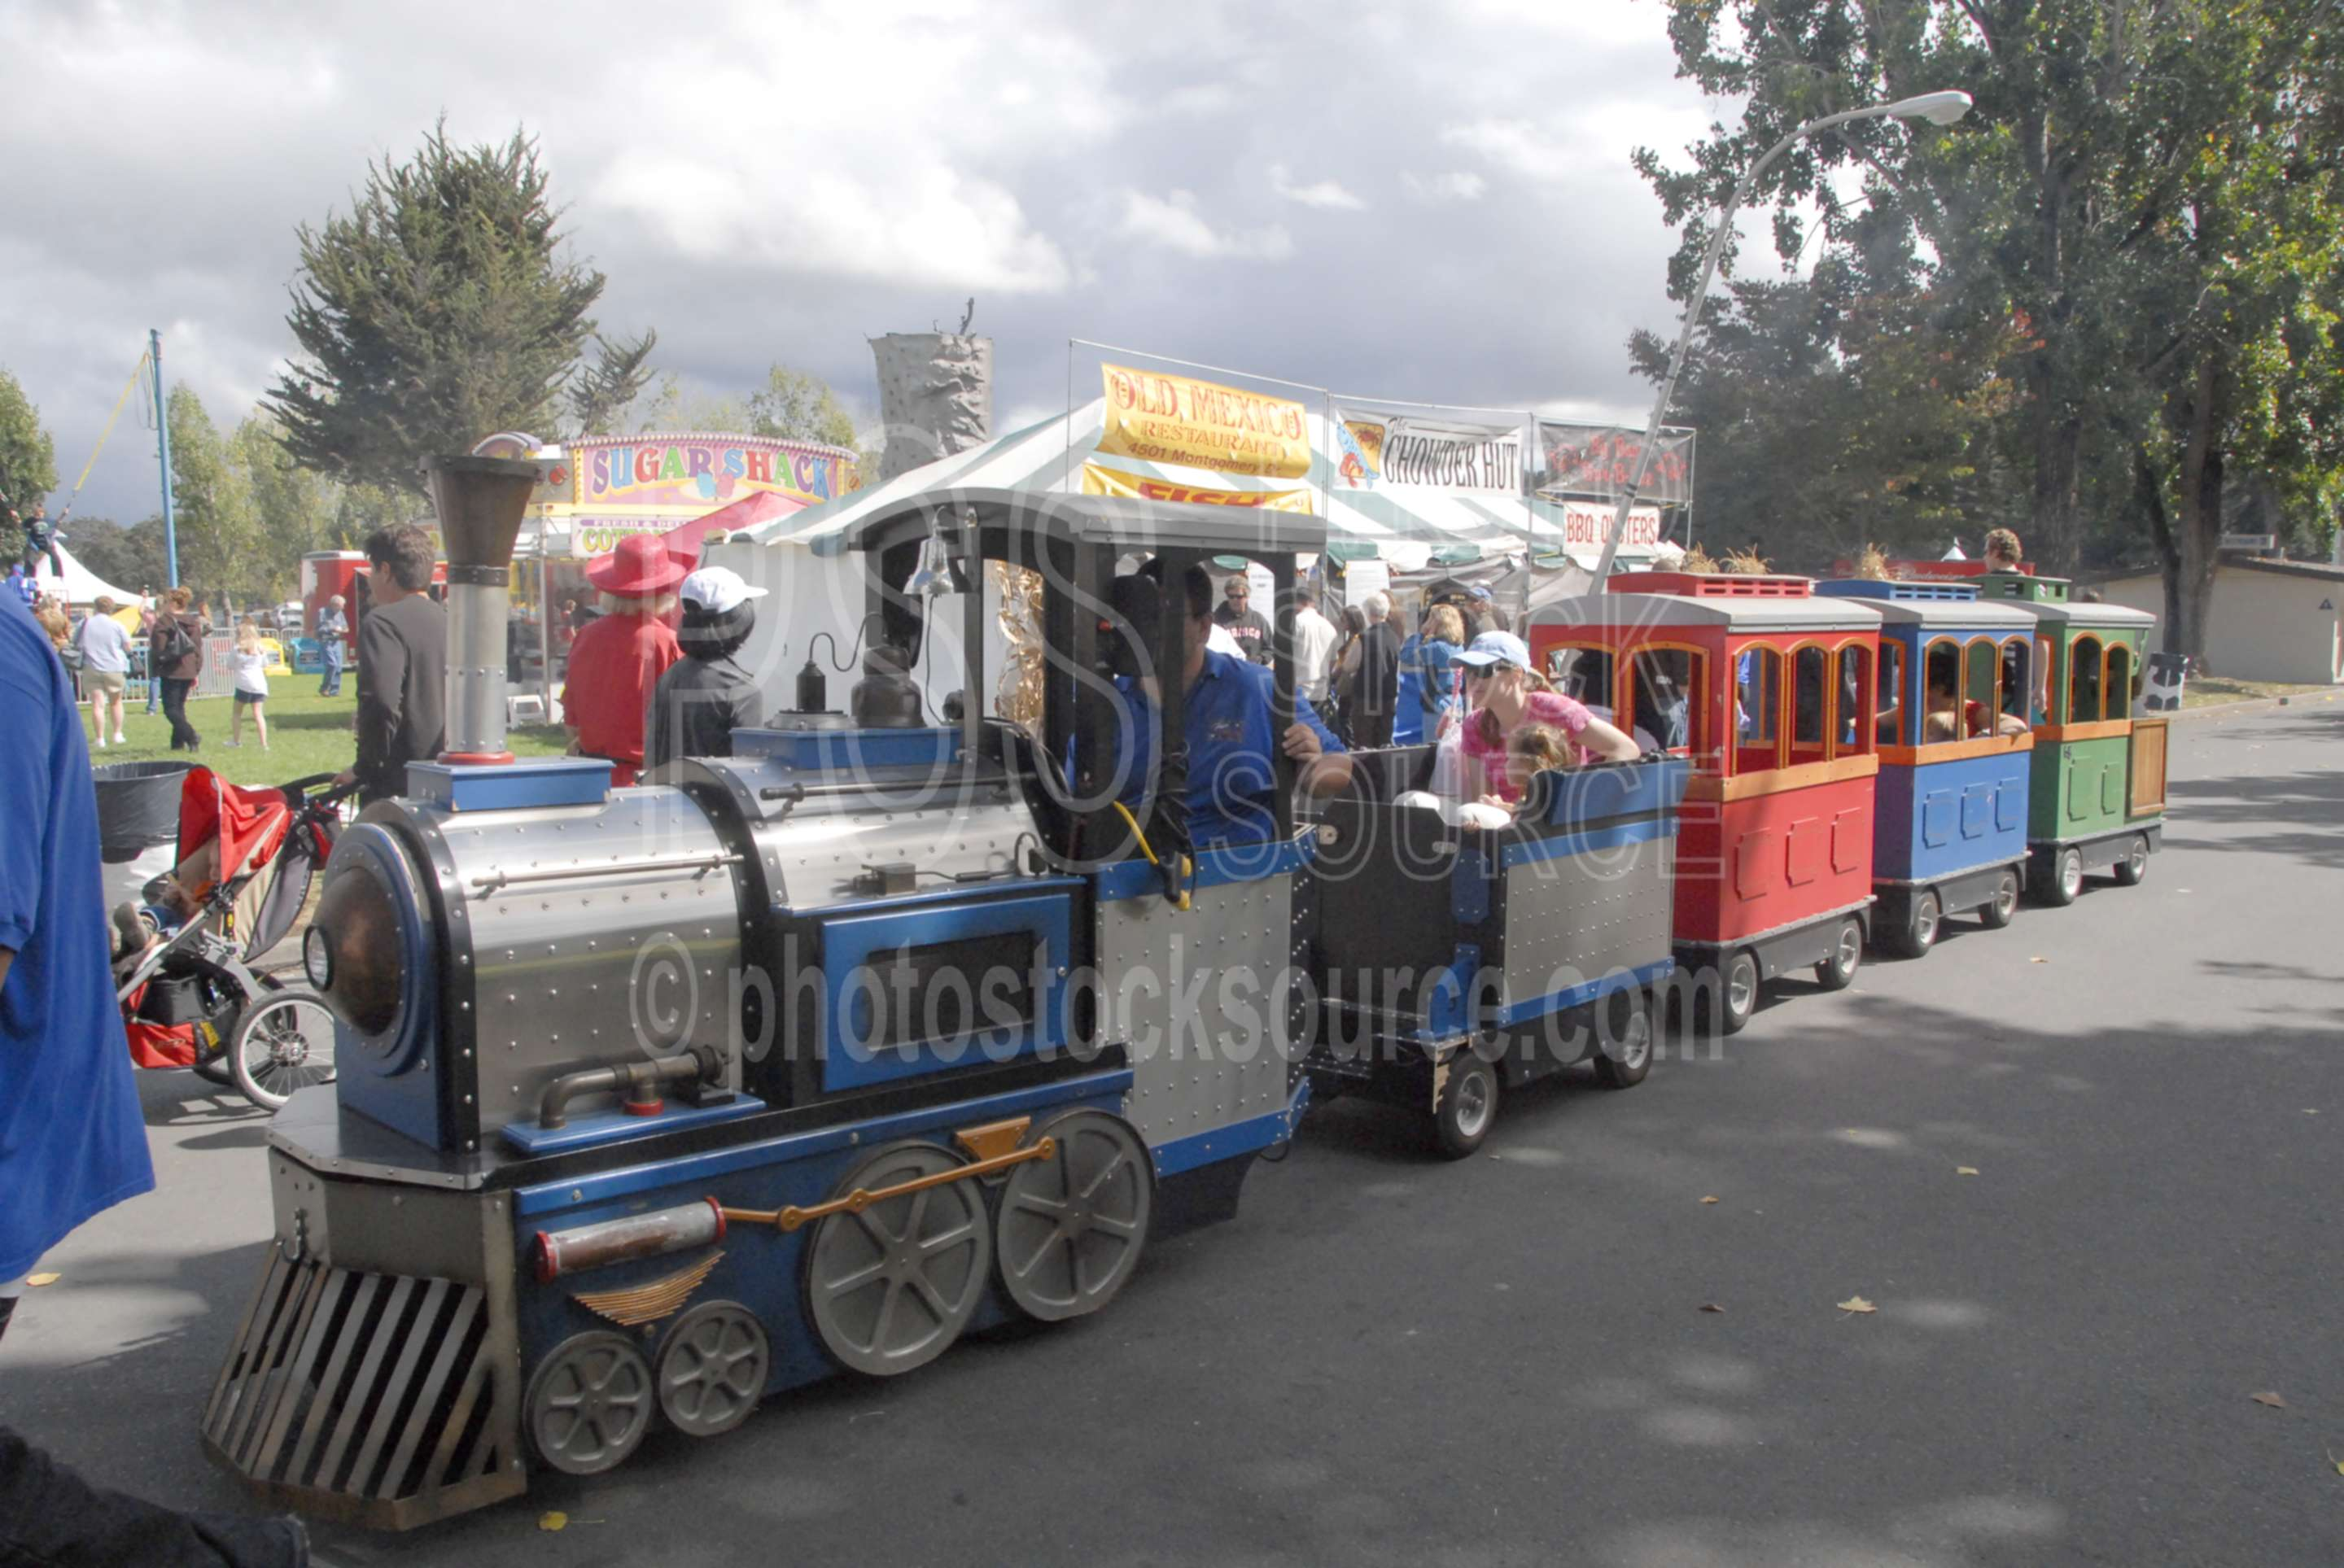 Toy Train,people,train,fair,festival,toy,minature,rides,train rides,children,trains